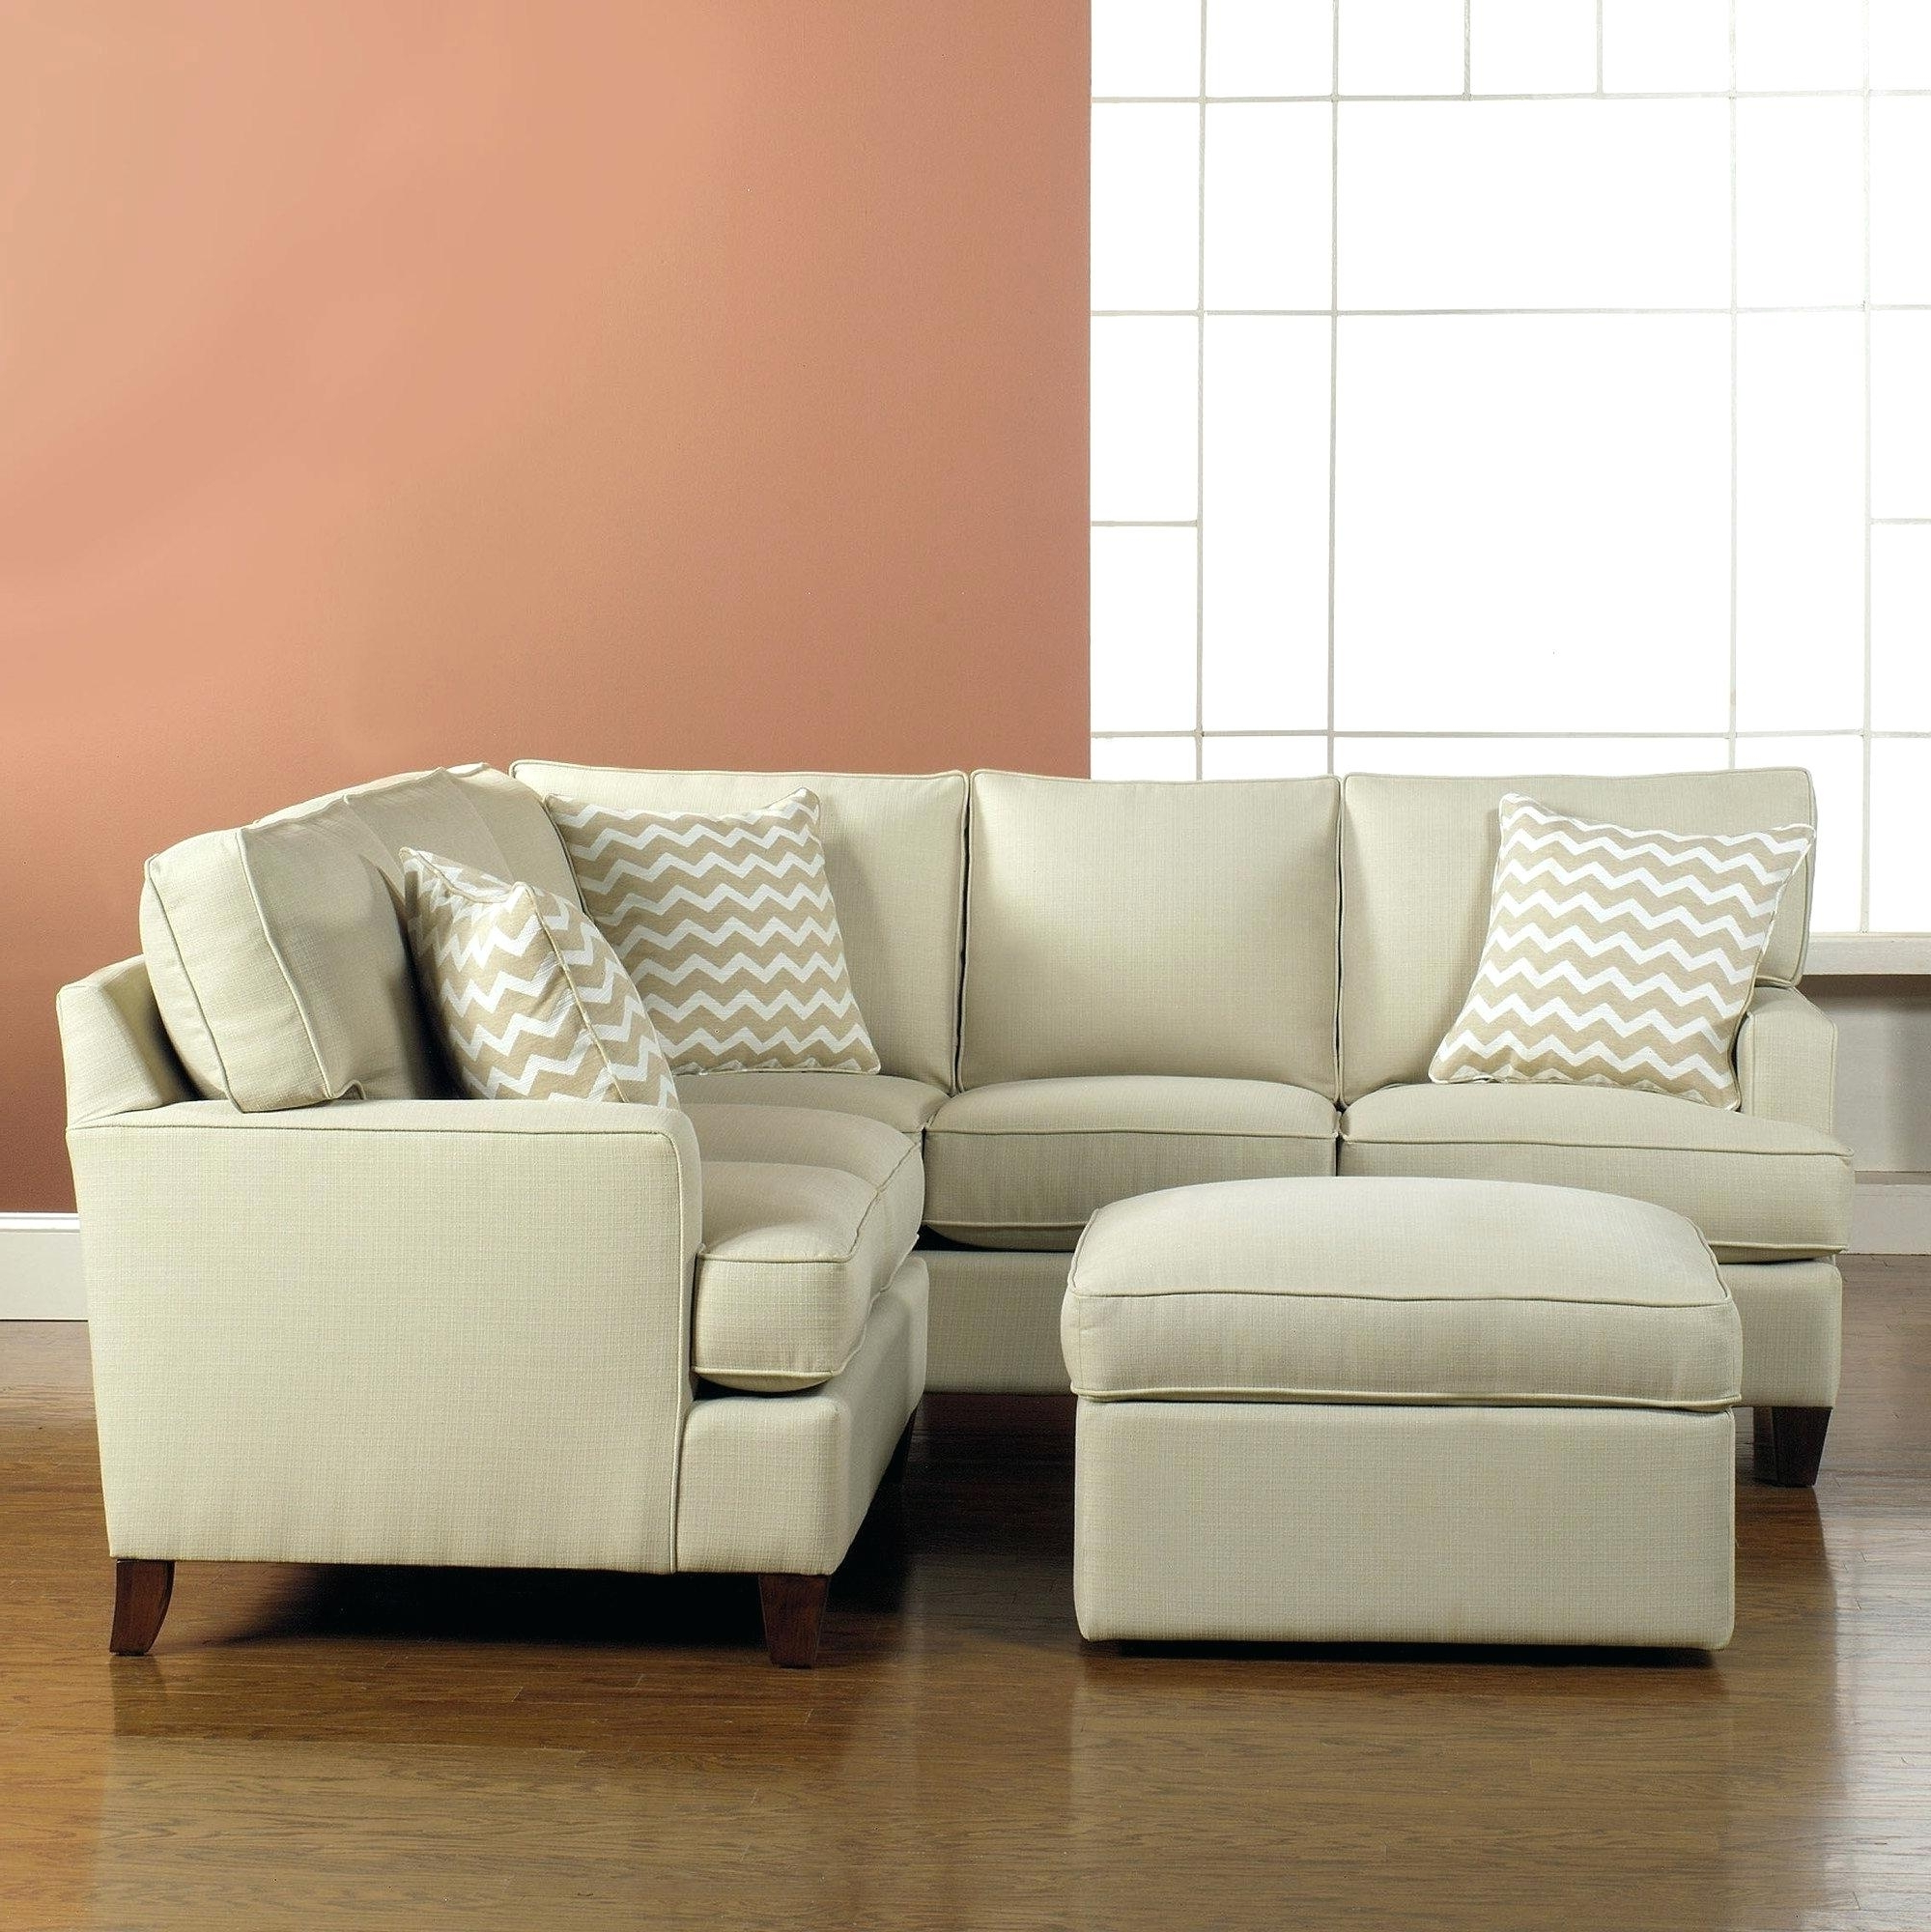 Fashionable Canada Sectional Sofas For Small Spaces With Regard To Sectionals Sofa Sectional Sofas For Small Spaces Canada Lane With (View 10 of 20)